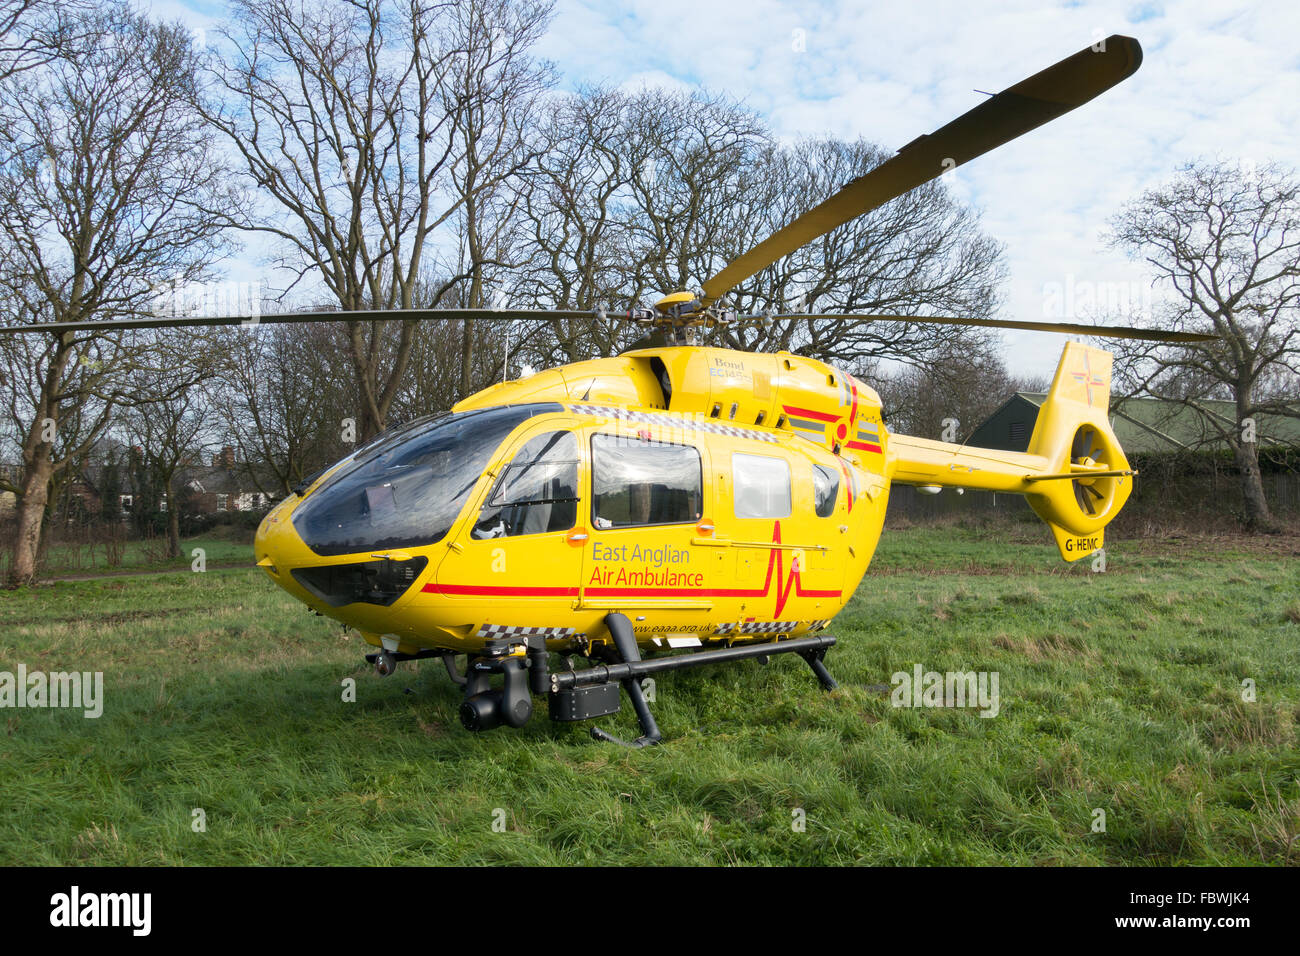 The East Anglian Air Ambulance helicopter on the ground in Newmarket, Suffolk, UK - Stock Image